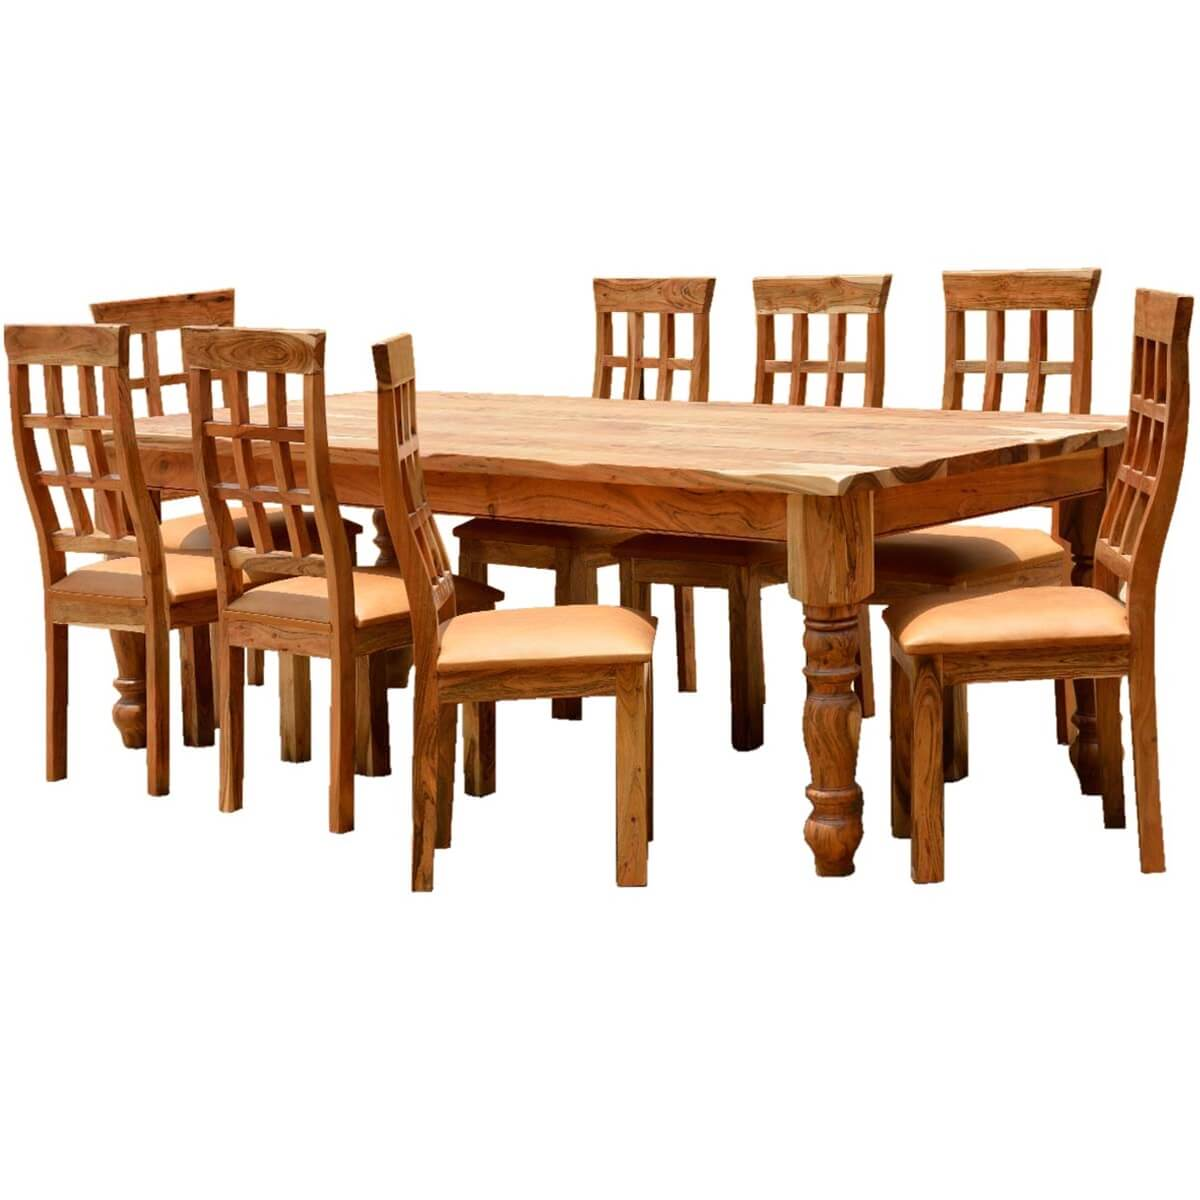 cheap farmhouse table and chairs little tikes art desk chair rustic furniture solid wood dining set